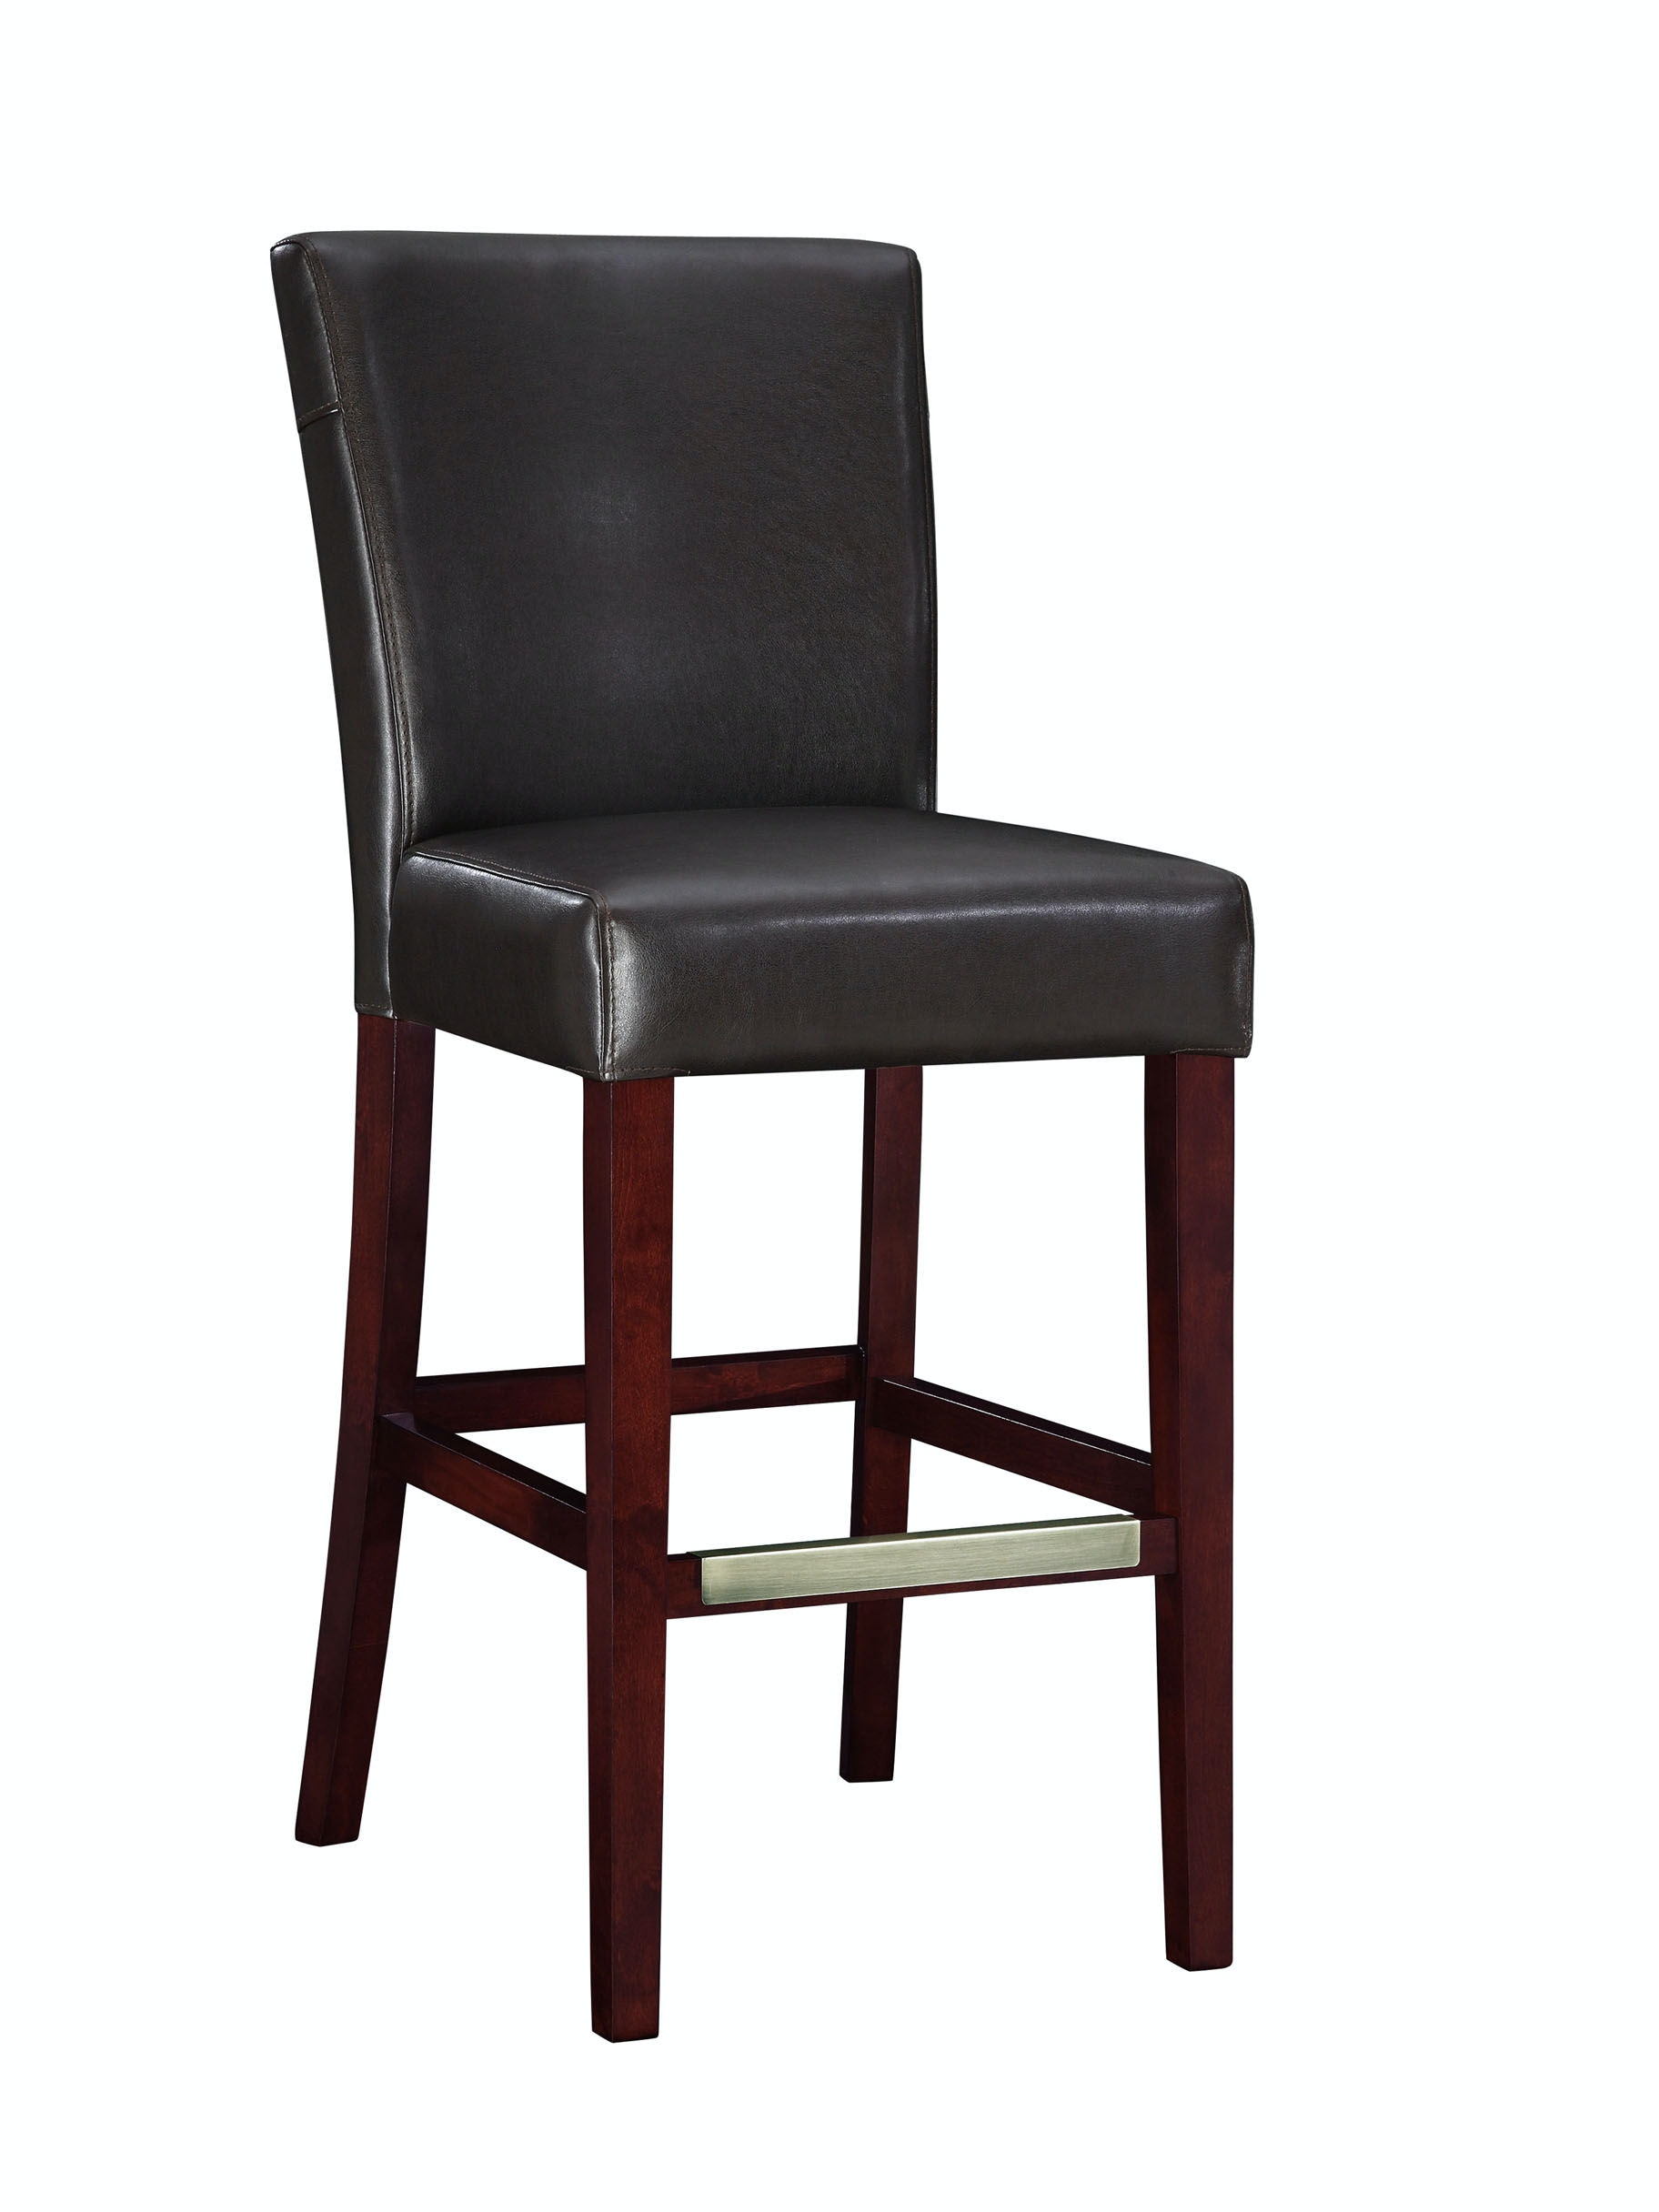 Powell Furniture Bar And Game Room Brown Bonded Leather Bar Stool